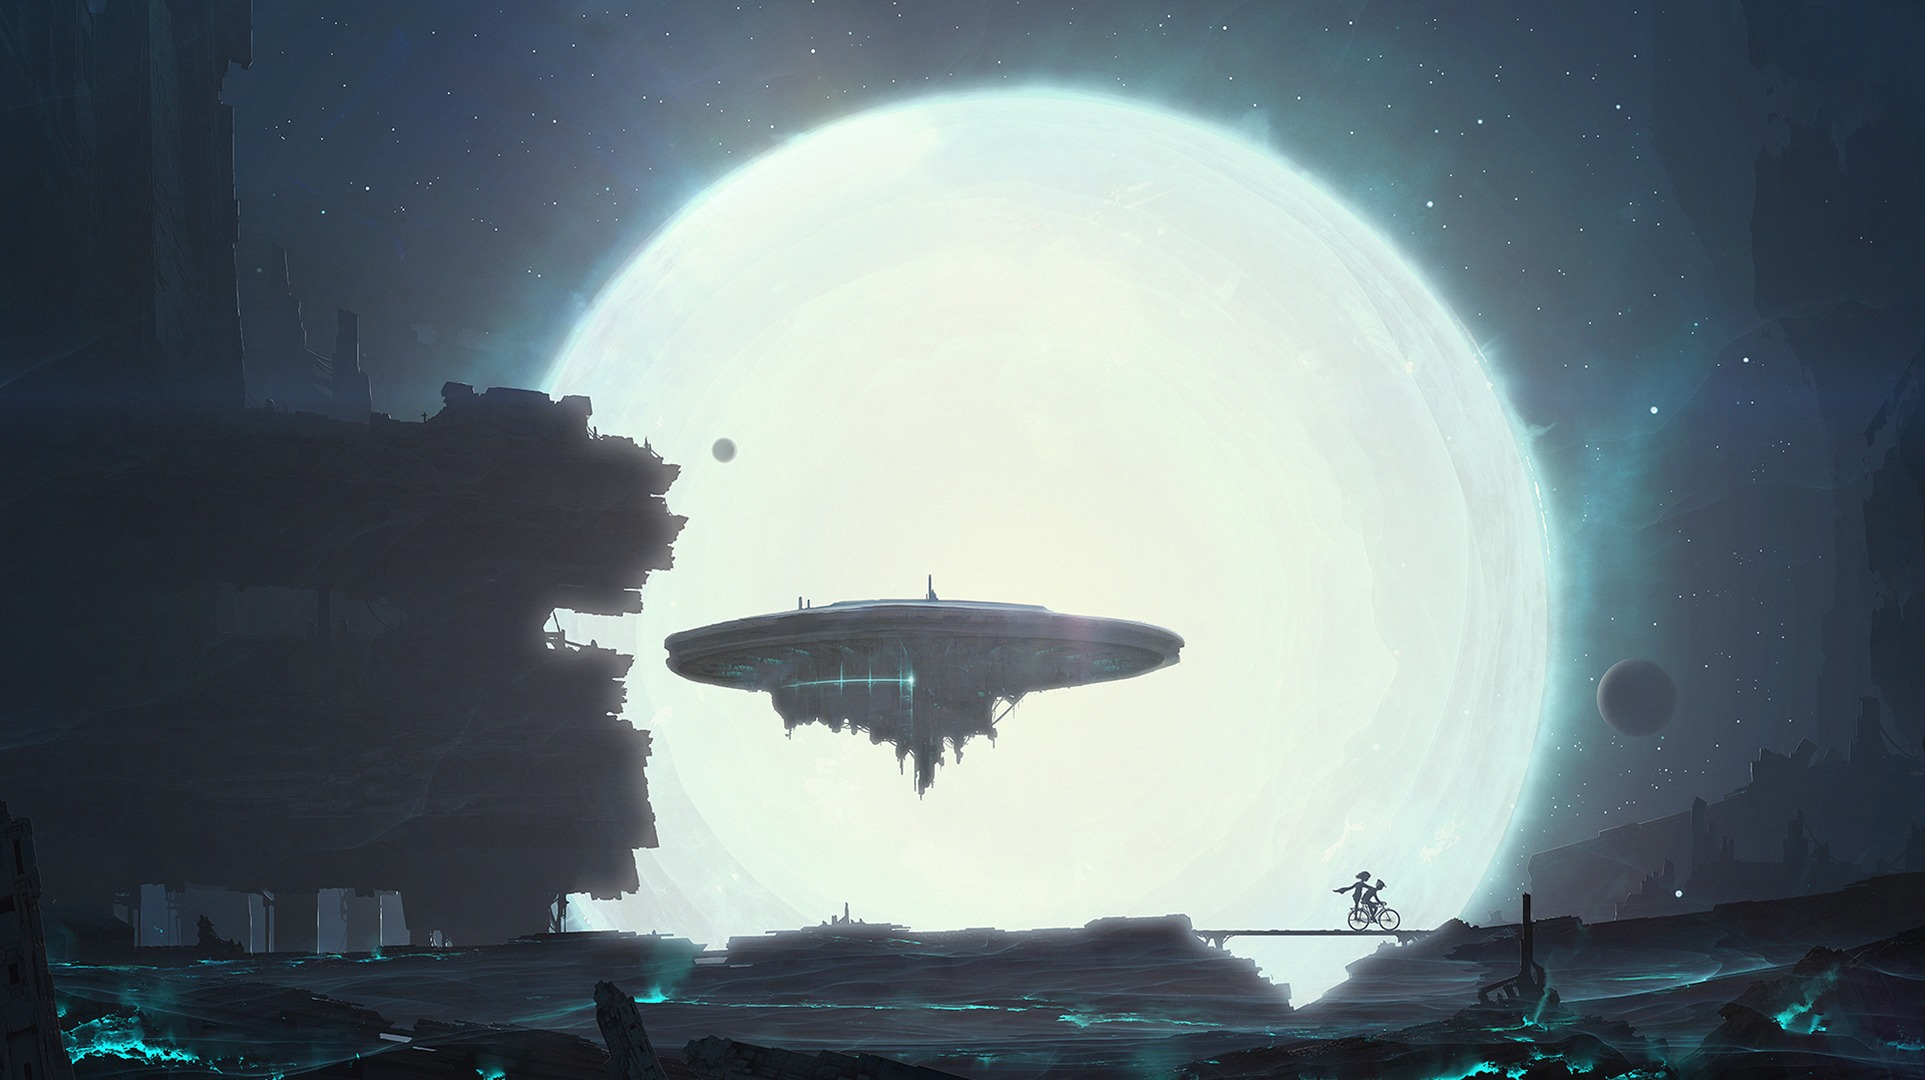 spaceship hd wallpaper for iphone